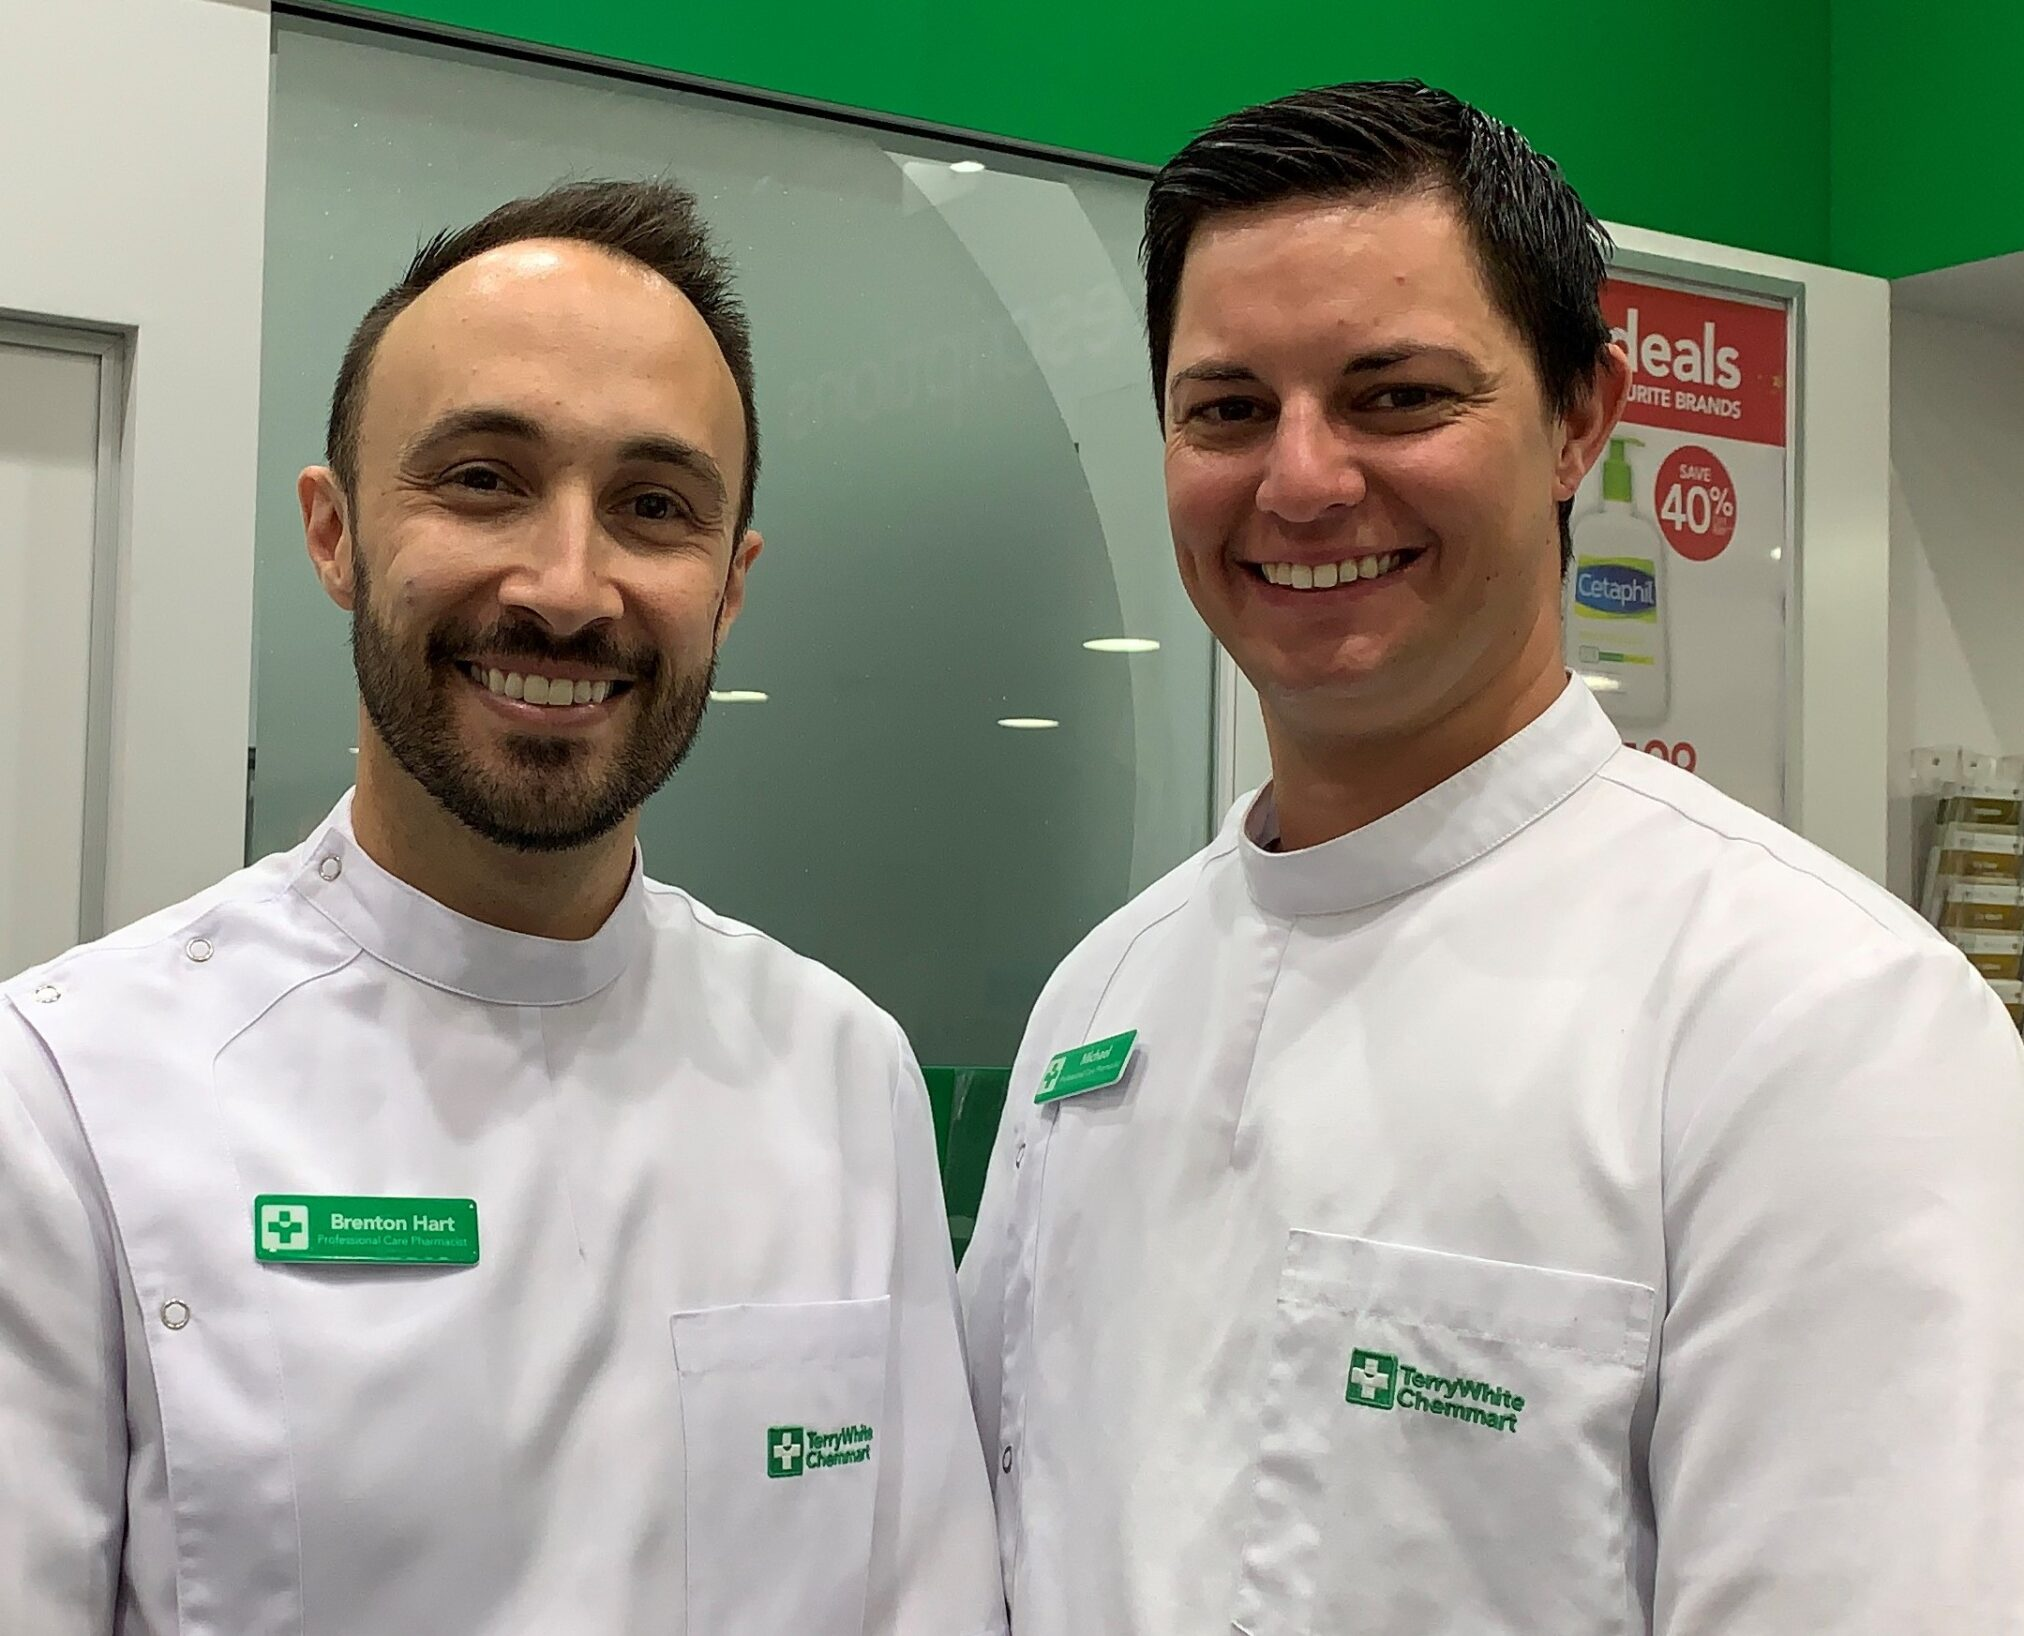 Brenton Hart and Michael Minter two men smiling in pharmacy uniforms